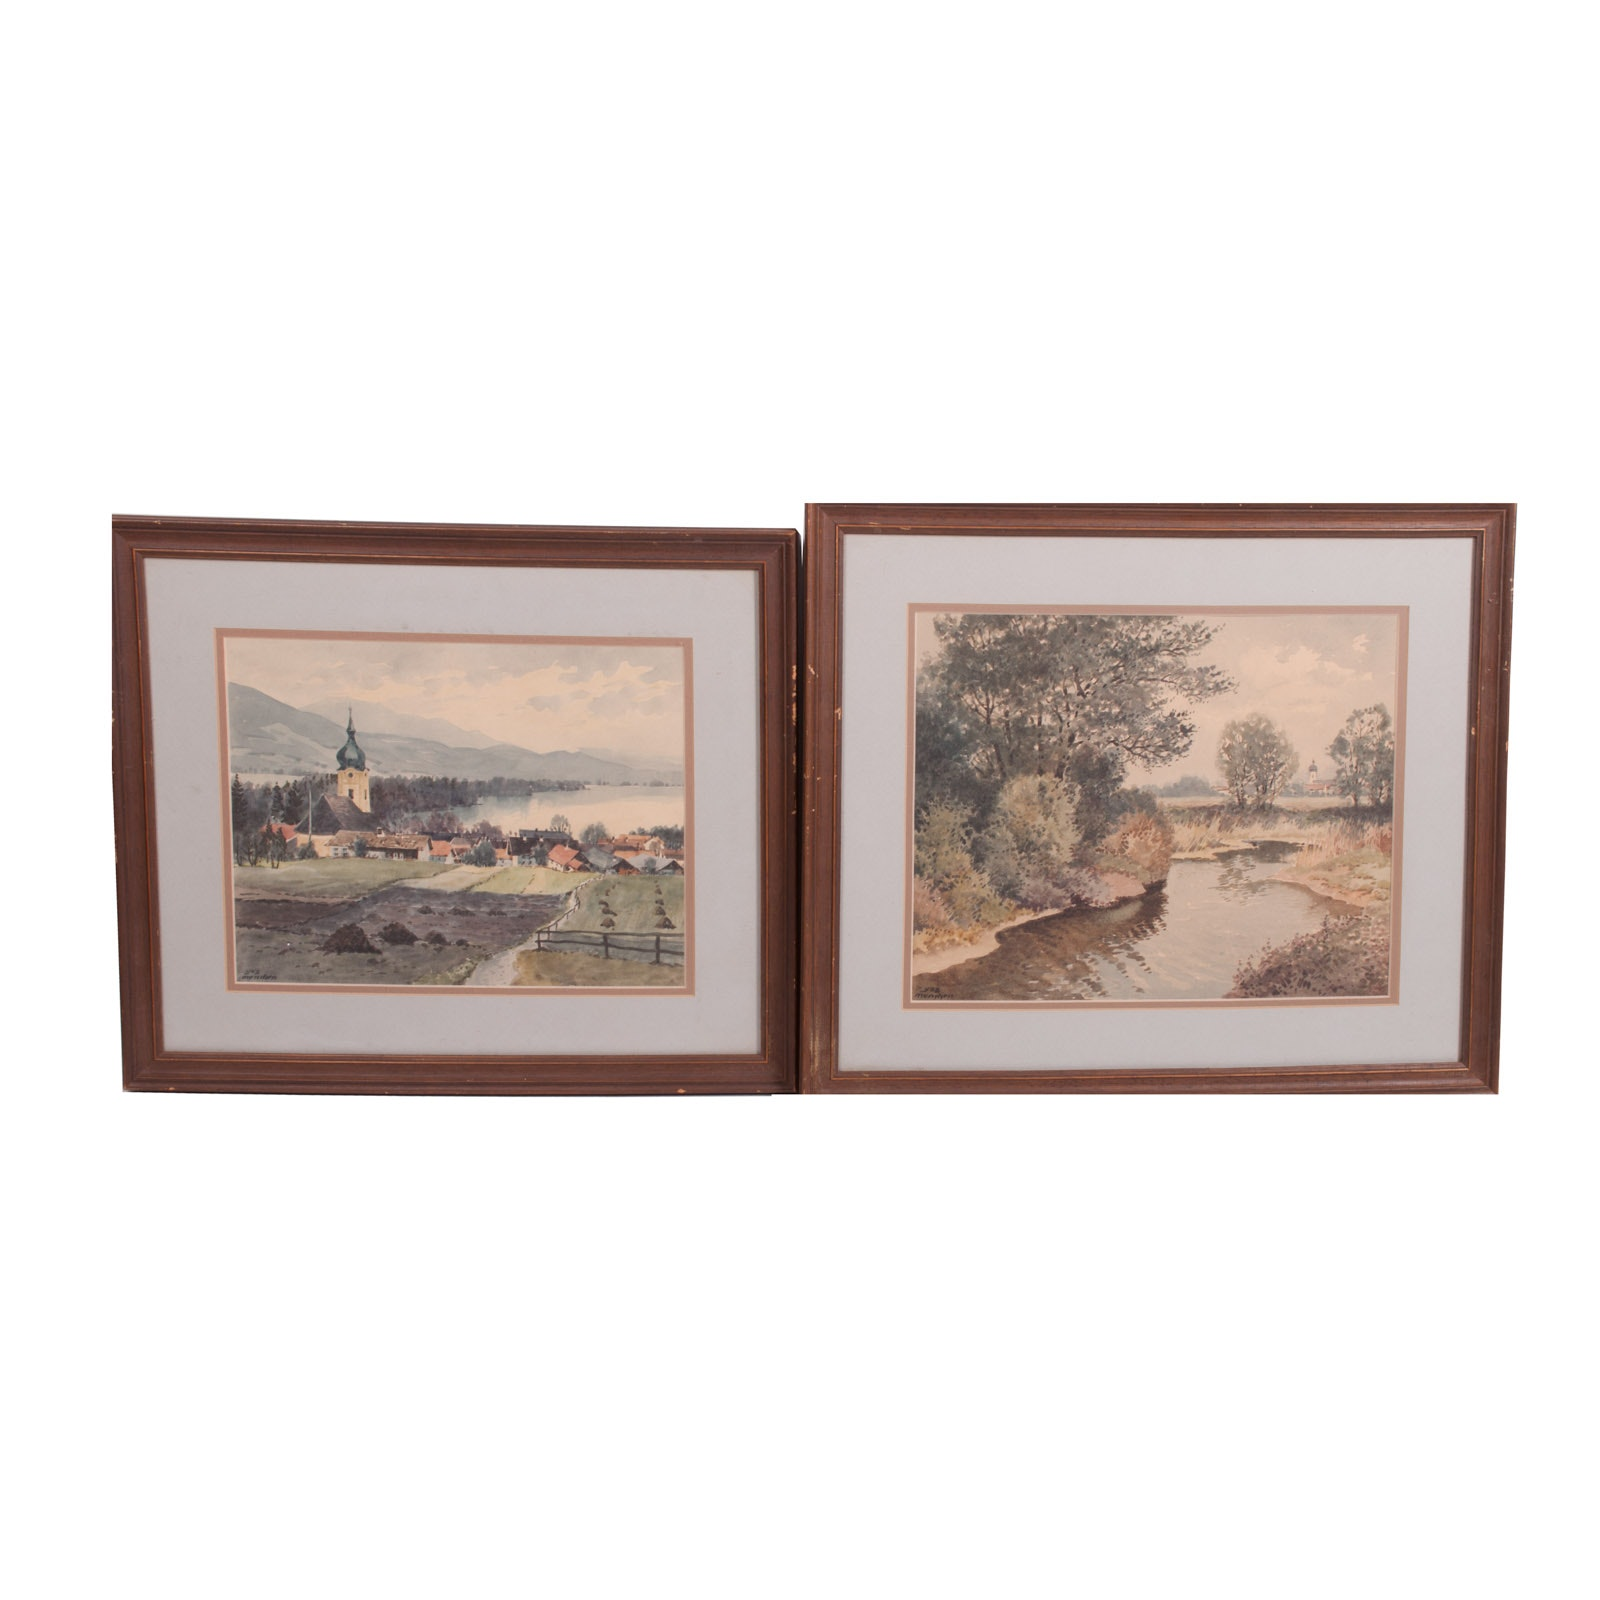 Pair of Watercolor Paintings on Paper of German Village and Countryside